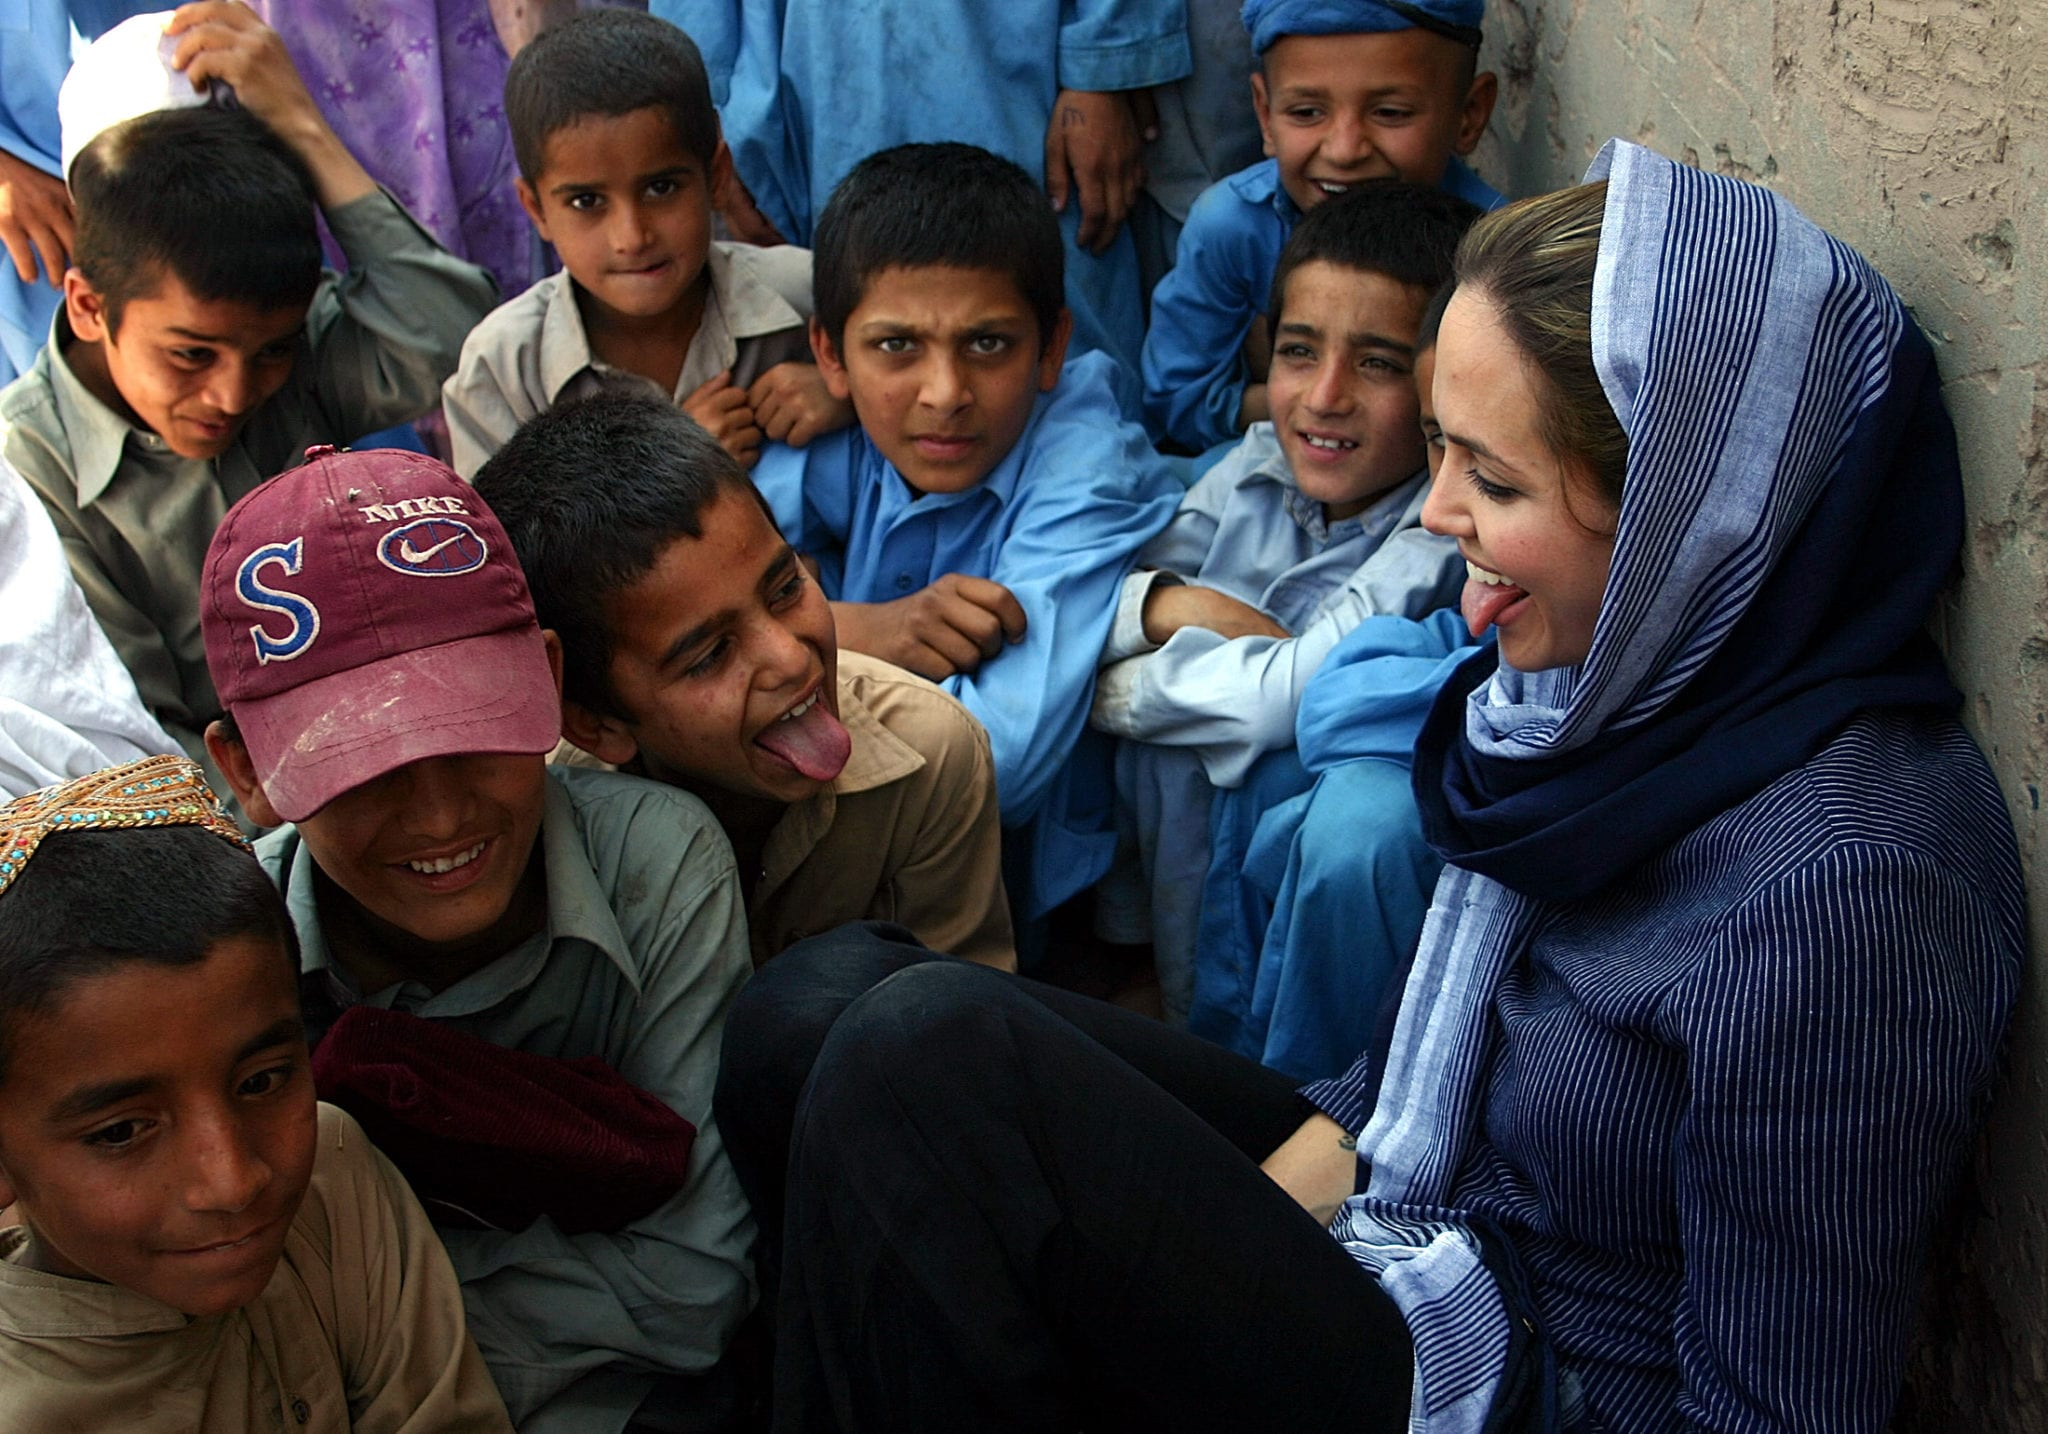 Hollywood actress and Oscar winner, Angelina Jolie (R), who is also the United Nations High Commissioner for Refugees (UNHCR) Goodwill Ambassador, plays with Afghan refugee children during her visit at Kacha Gari refugee camp in Peshawar May 5, 2005. Jolie asked on Saturday for increased international help to repatriate more than 3 million Afghans living in Pakistan. Picture taken May 5, 2005. REUTERS/UNHCR/Handout PAKISTAN REFUGEES JOLIE